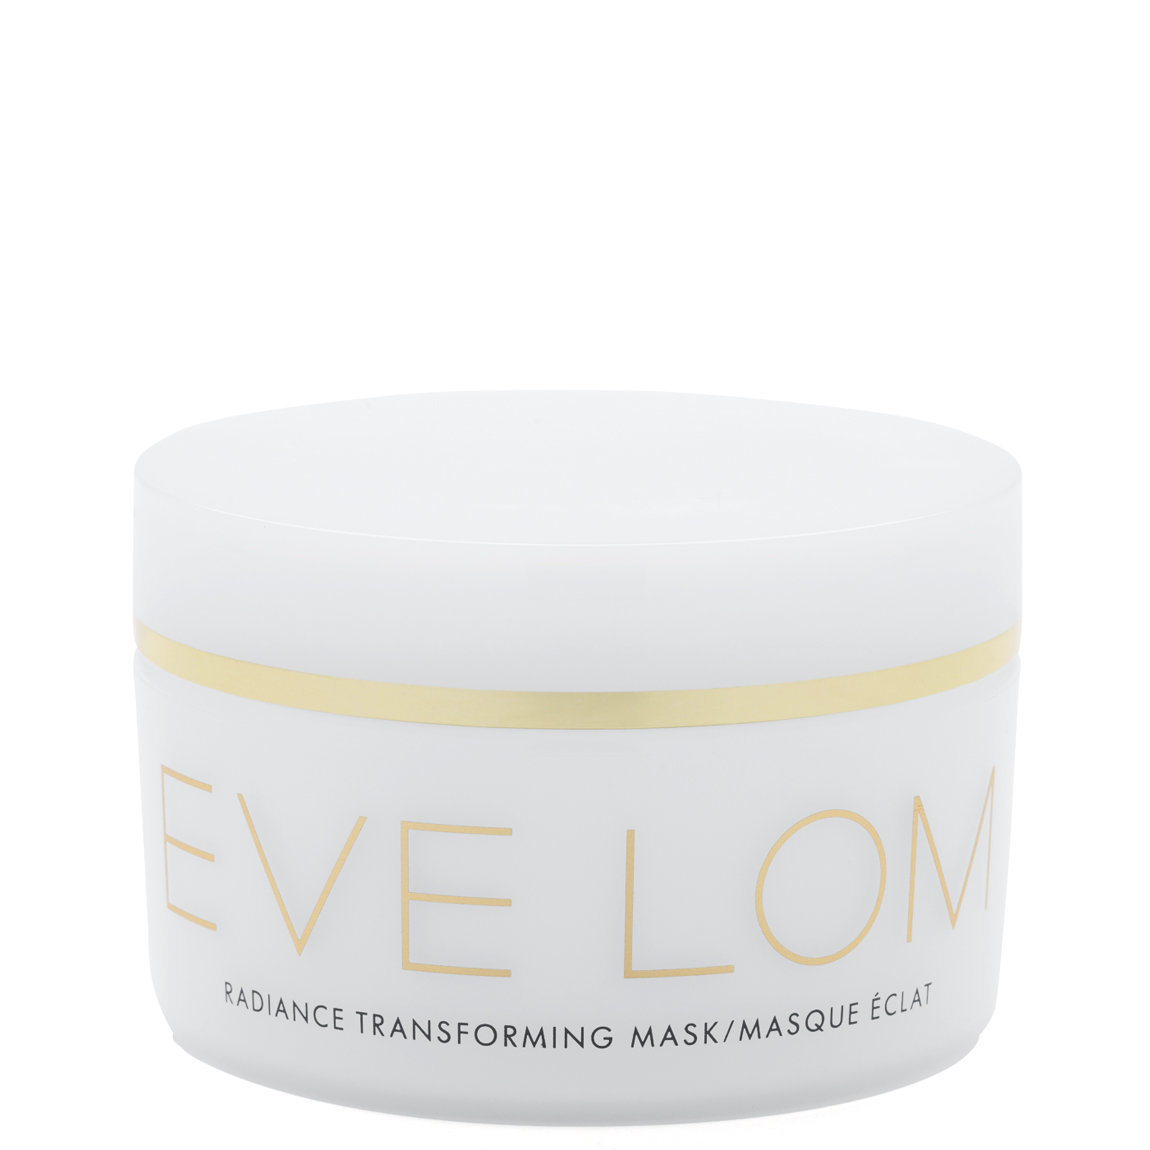 EVE LOM Radiance Transforming Mask product smear.